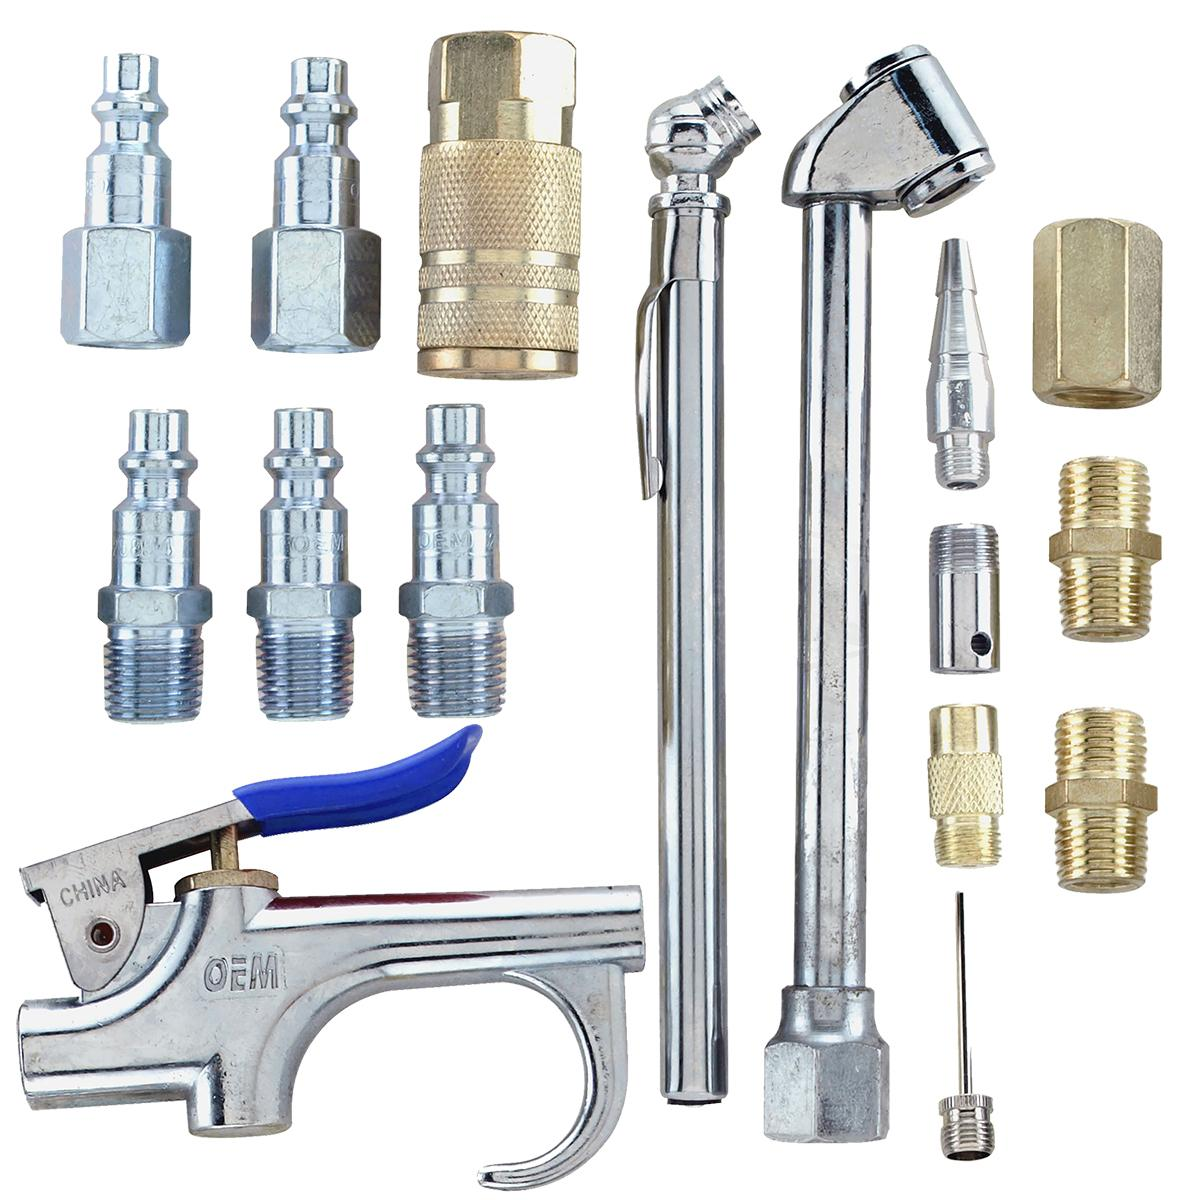 Campbell Hausfeld 17-Piece Air Tool and Accessory Kit